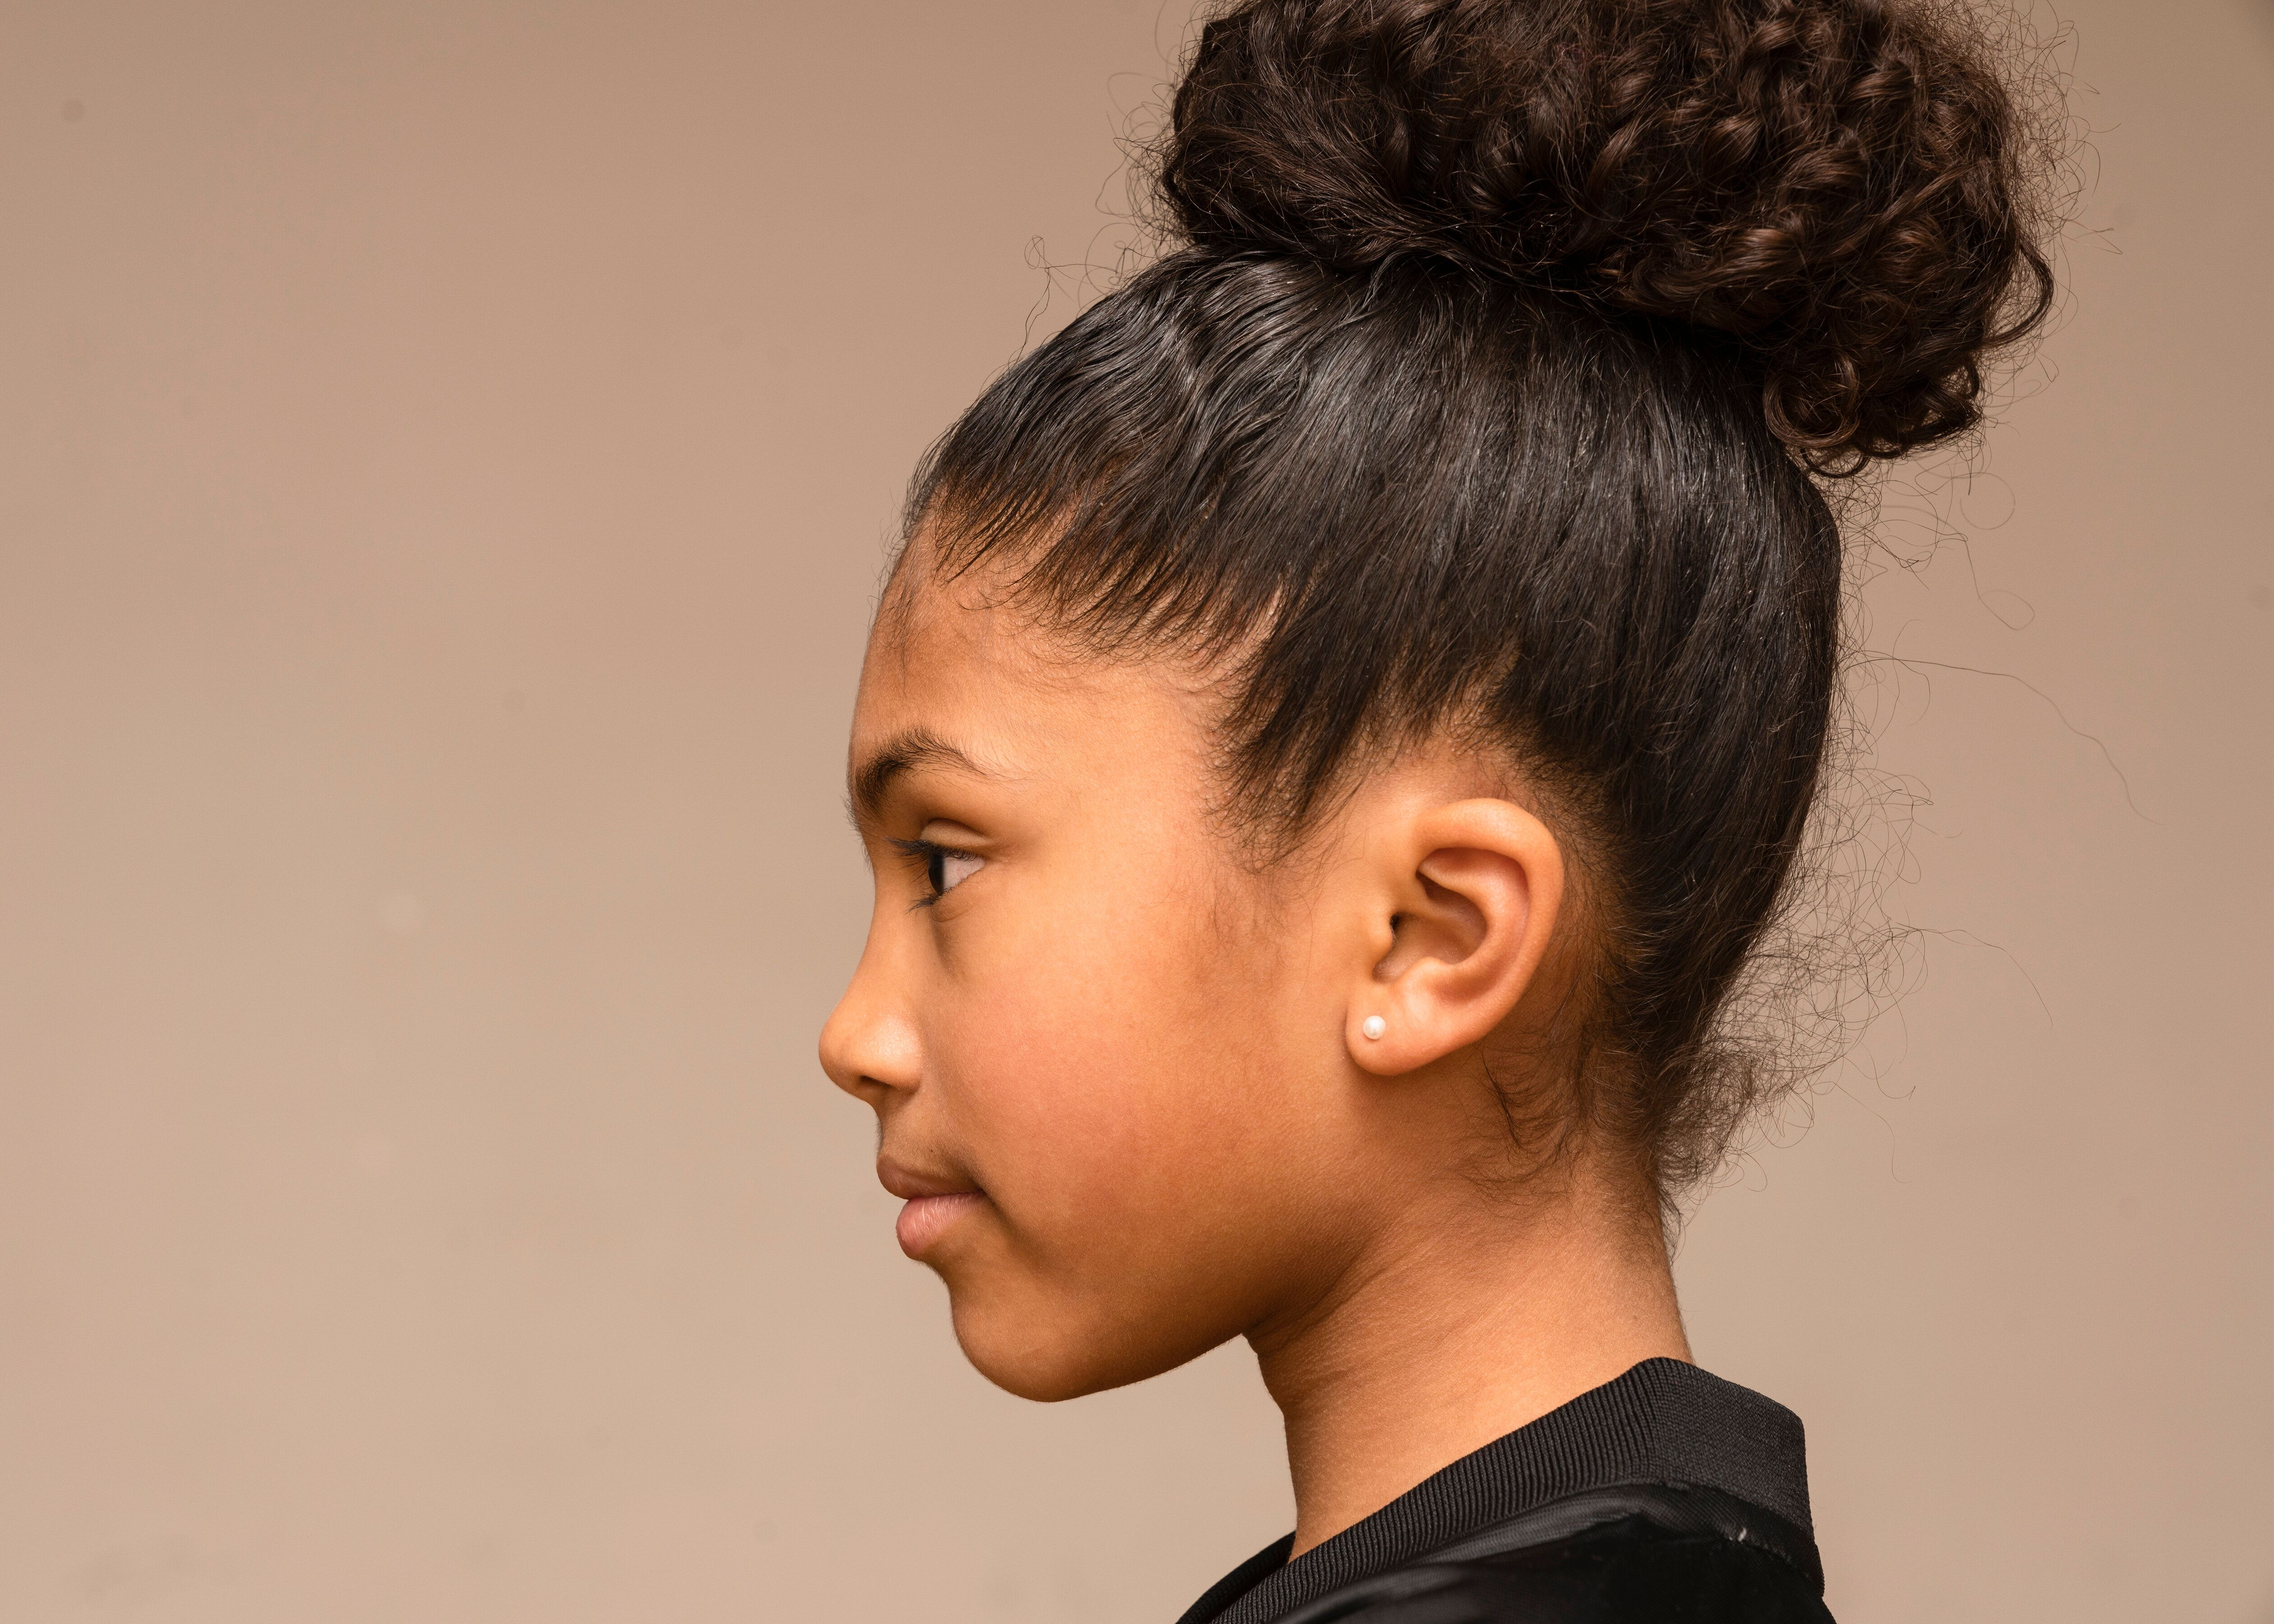 Grown-ups Aren't Letting Black Girls Be Kids, And It's Harming